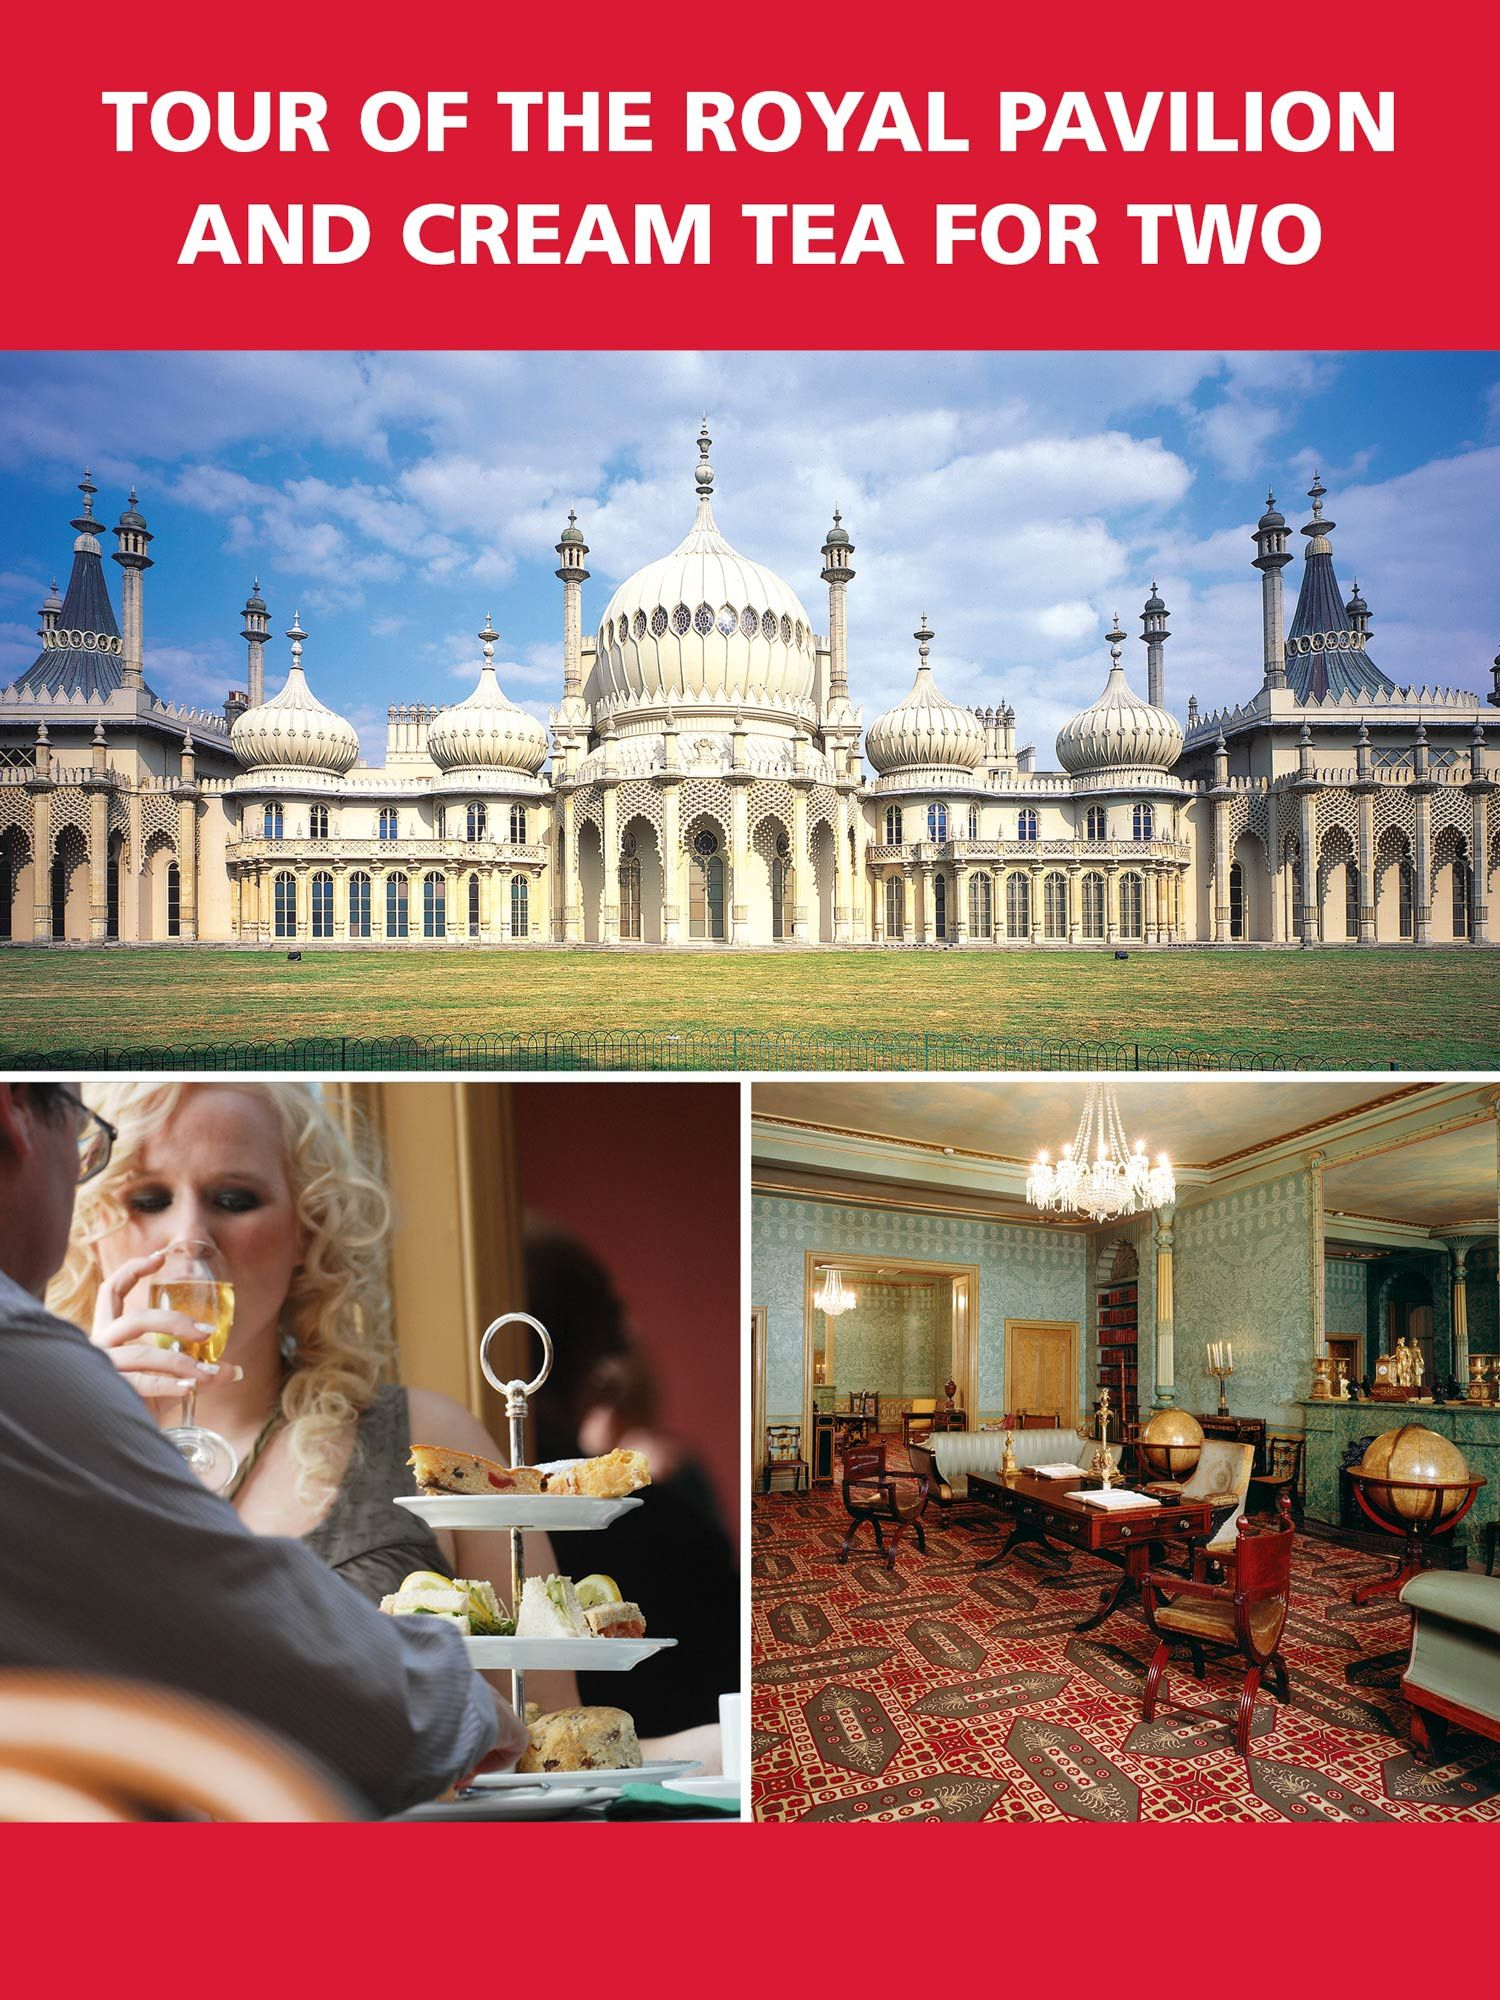 Brighton Royal Pavilion and Tea for Two